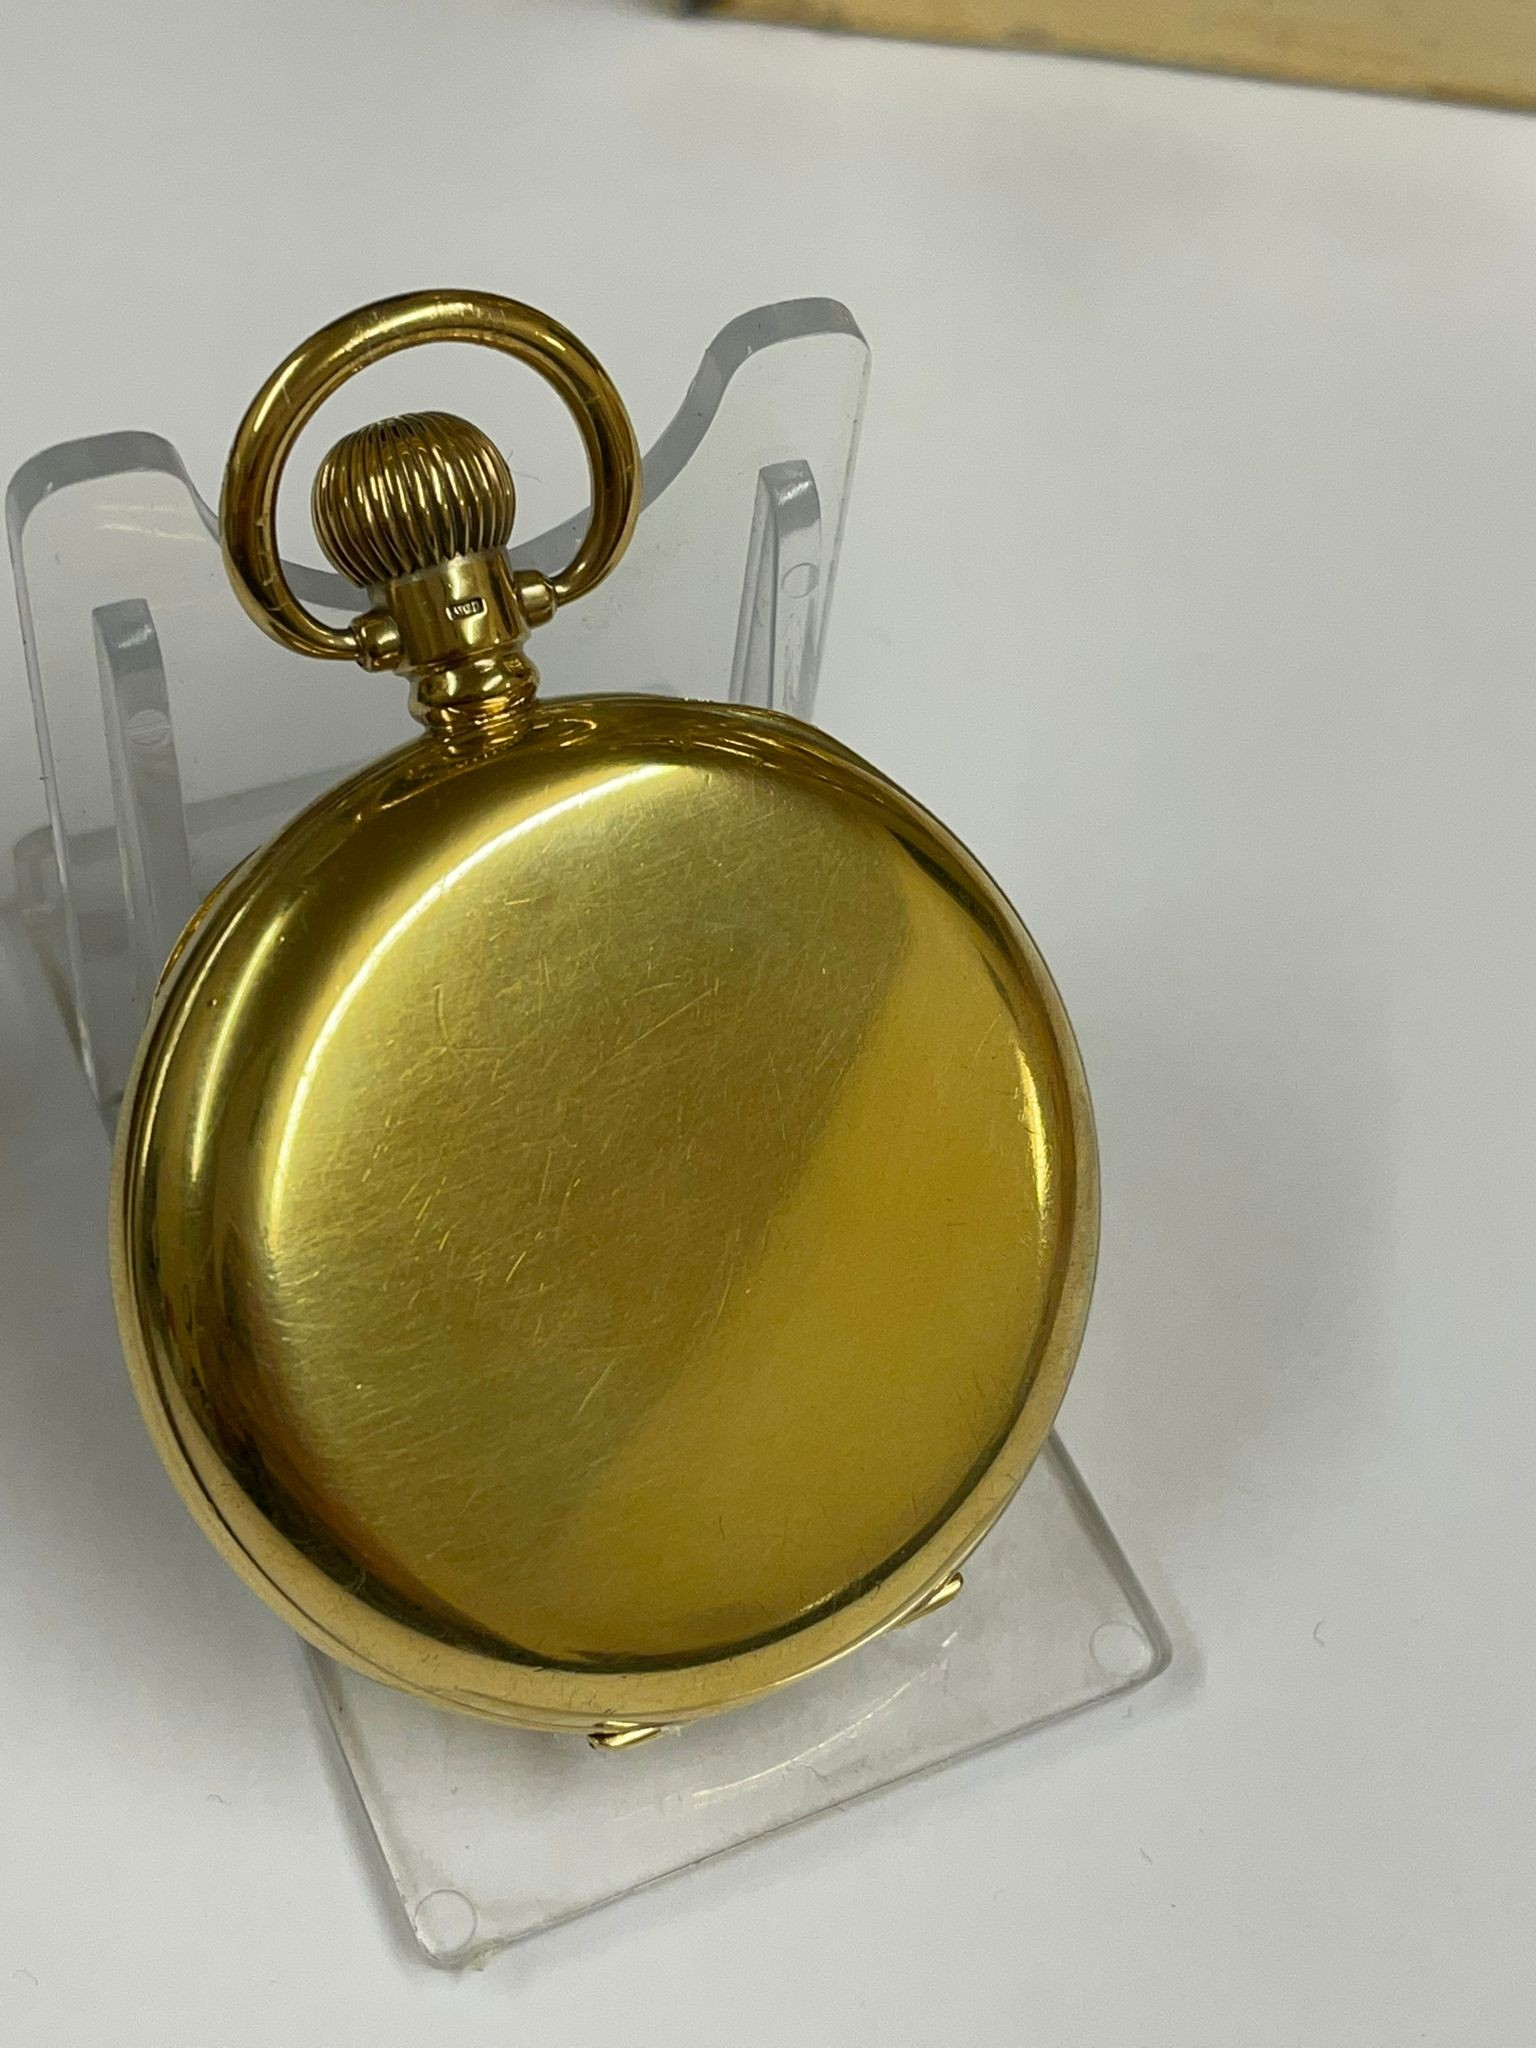 Vintage Masonic Rolex pocket watch with stand good condition and good working order but no - Image 17 of 21